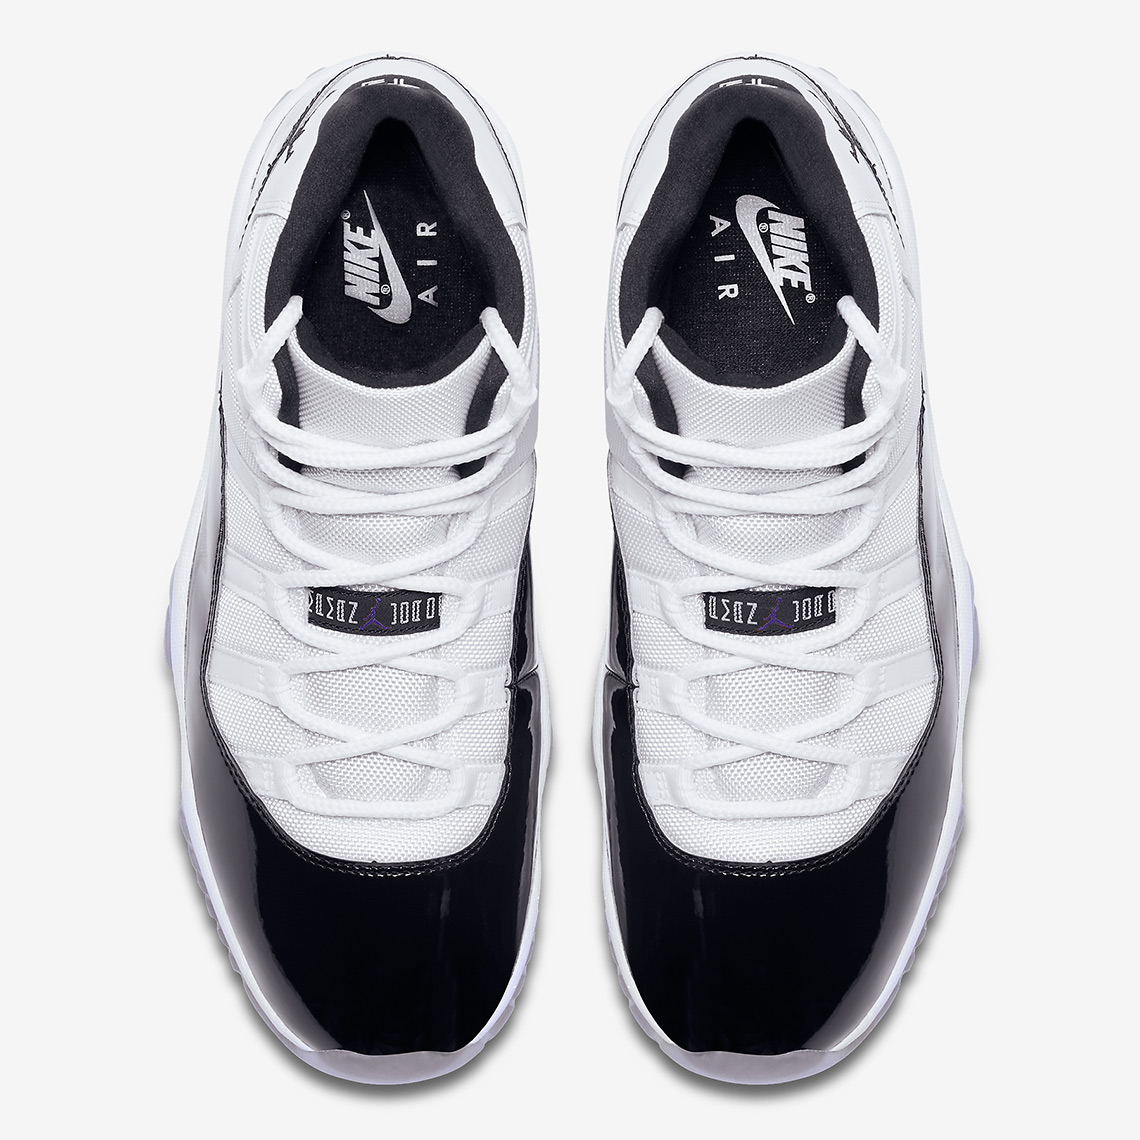 056a85aff818 Air Jordan 11 Concord SNKRS Release